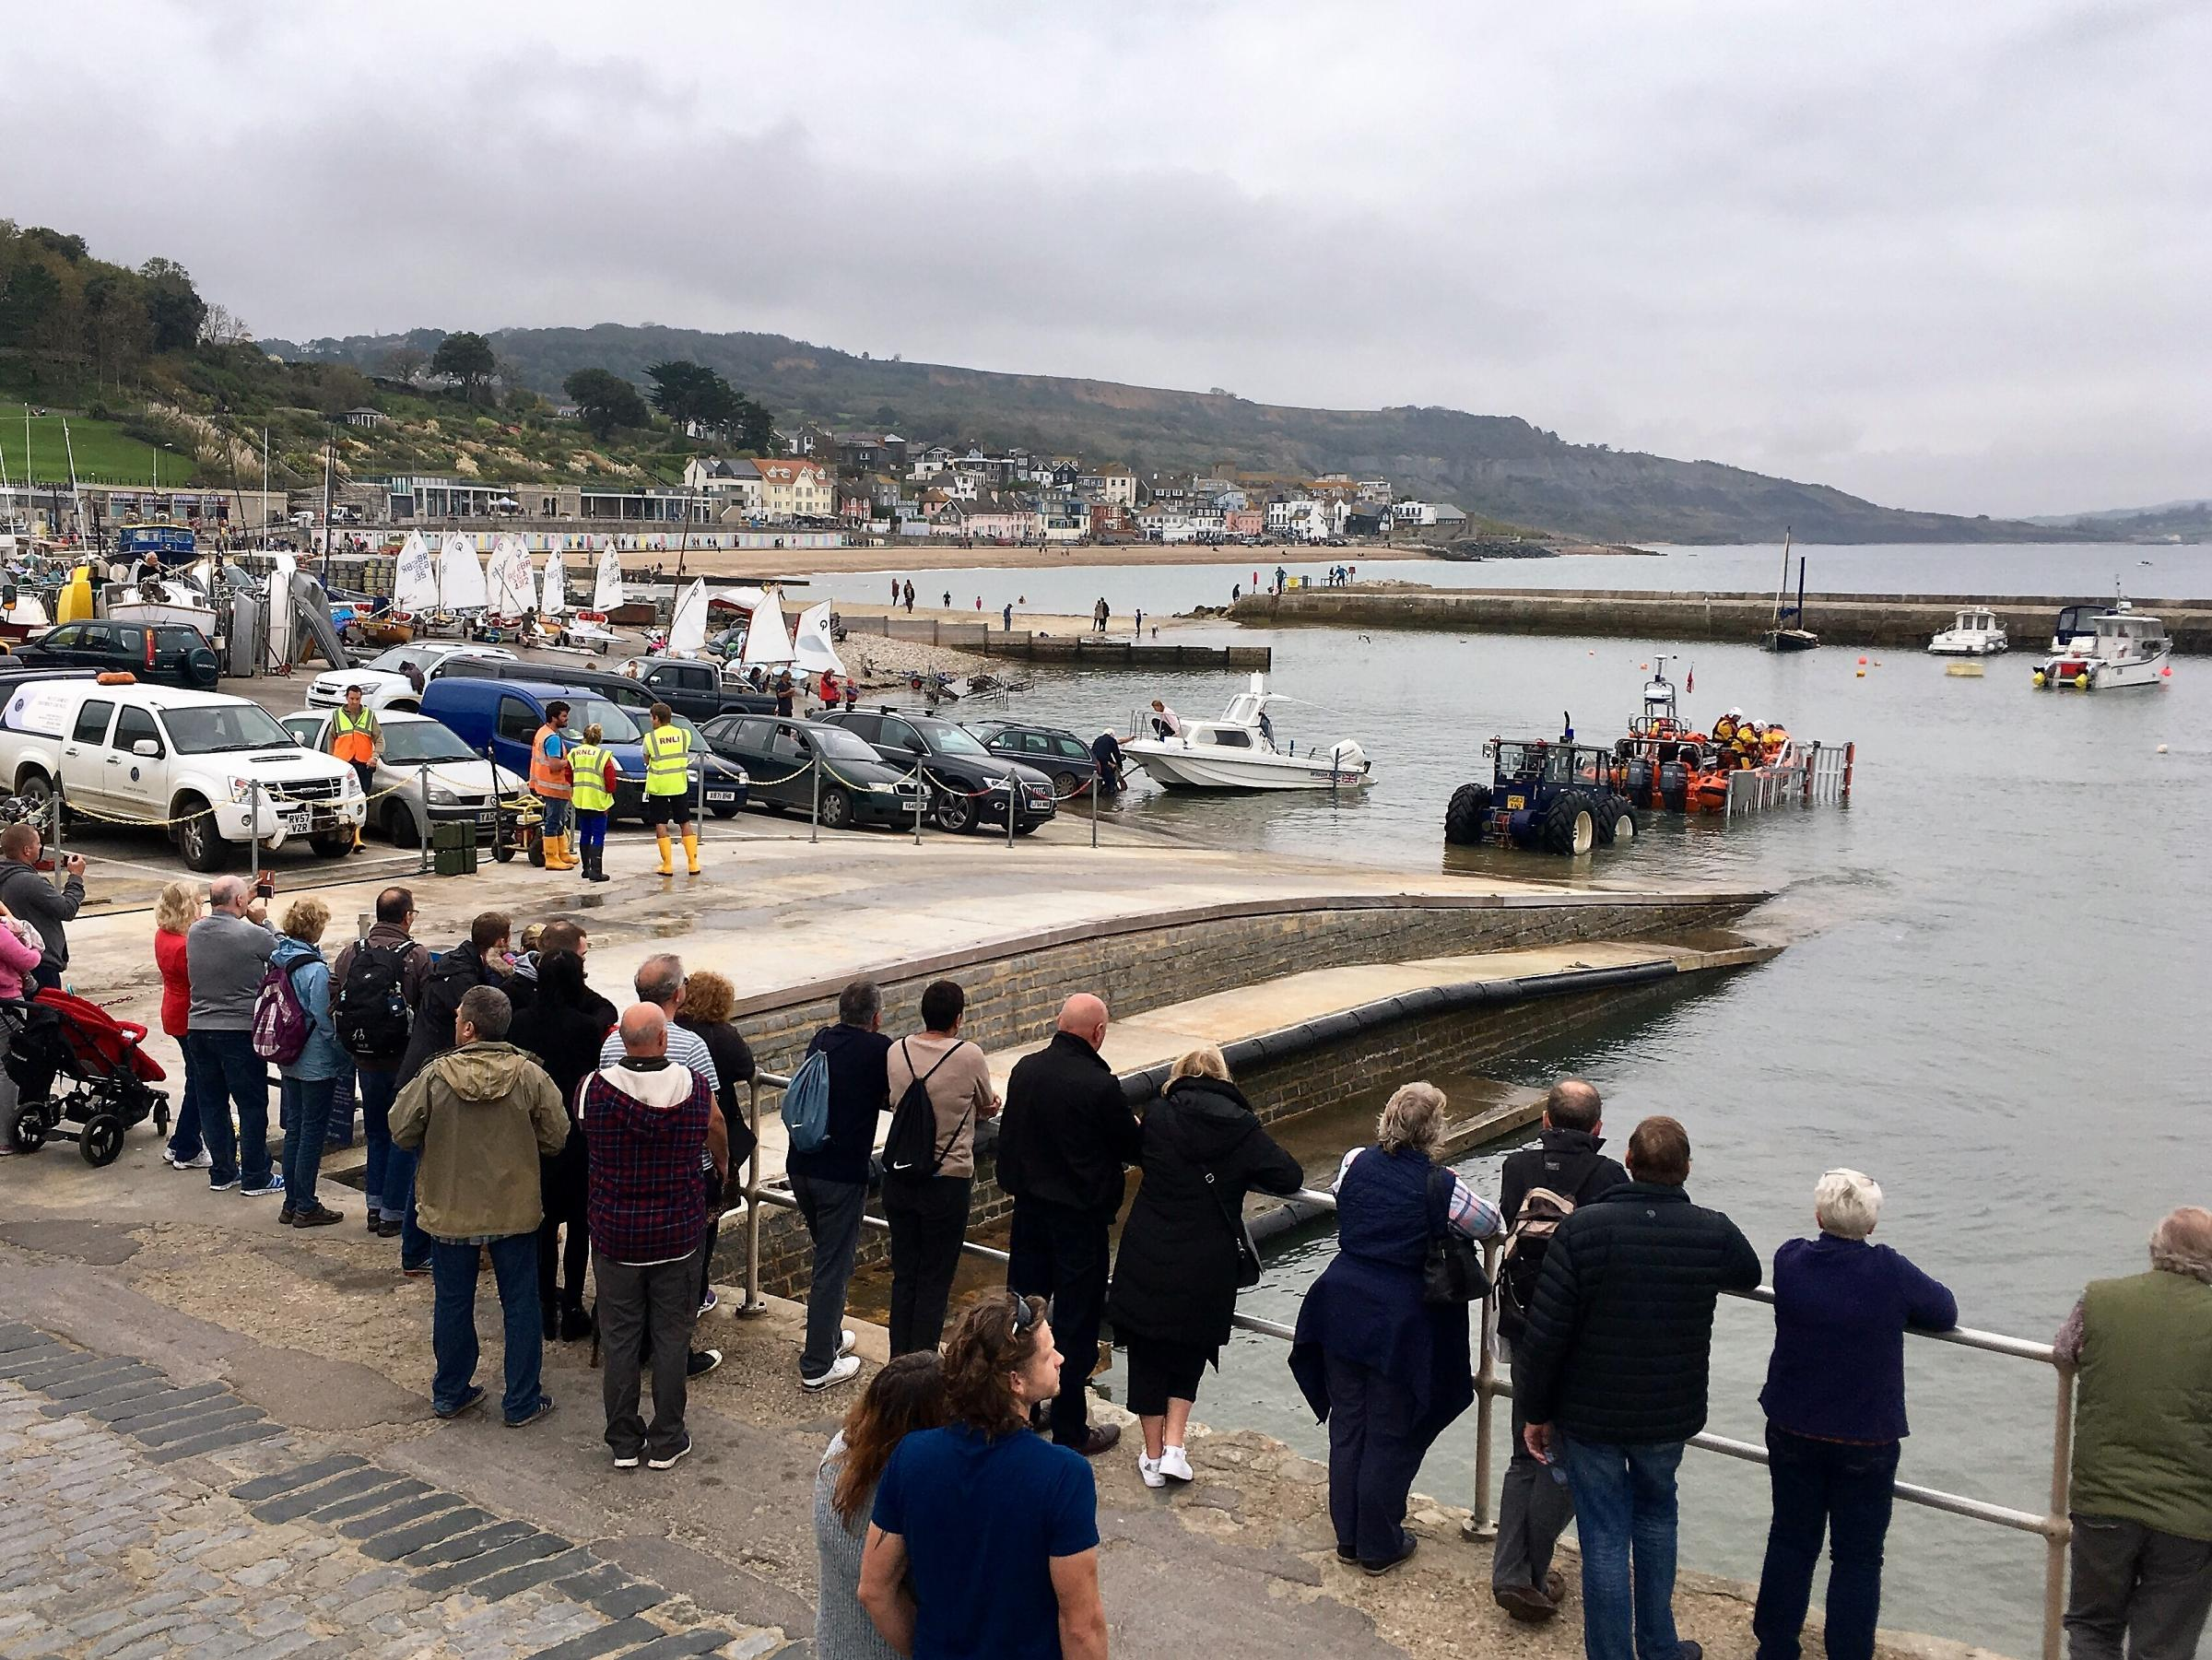 Onlookers at the barbour welcome the return of Lyme Regis lifeboat on Saturday. Photo: Seb Cope